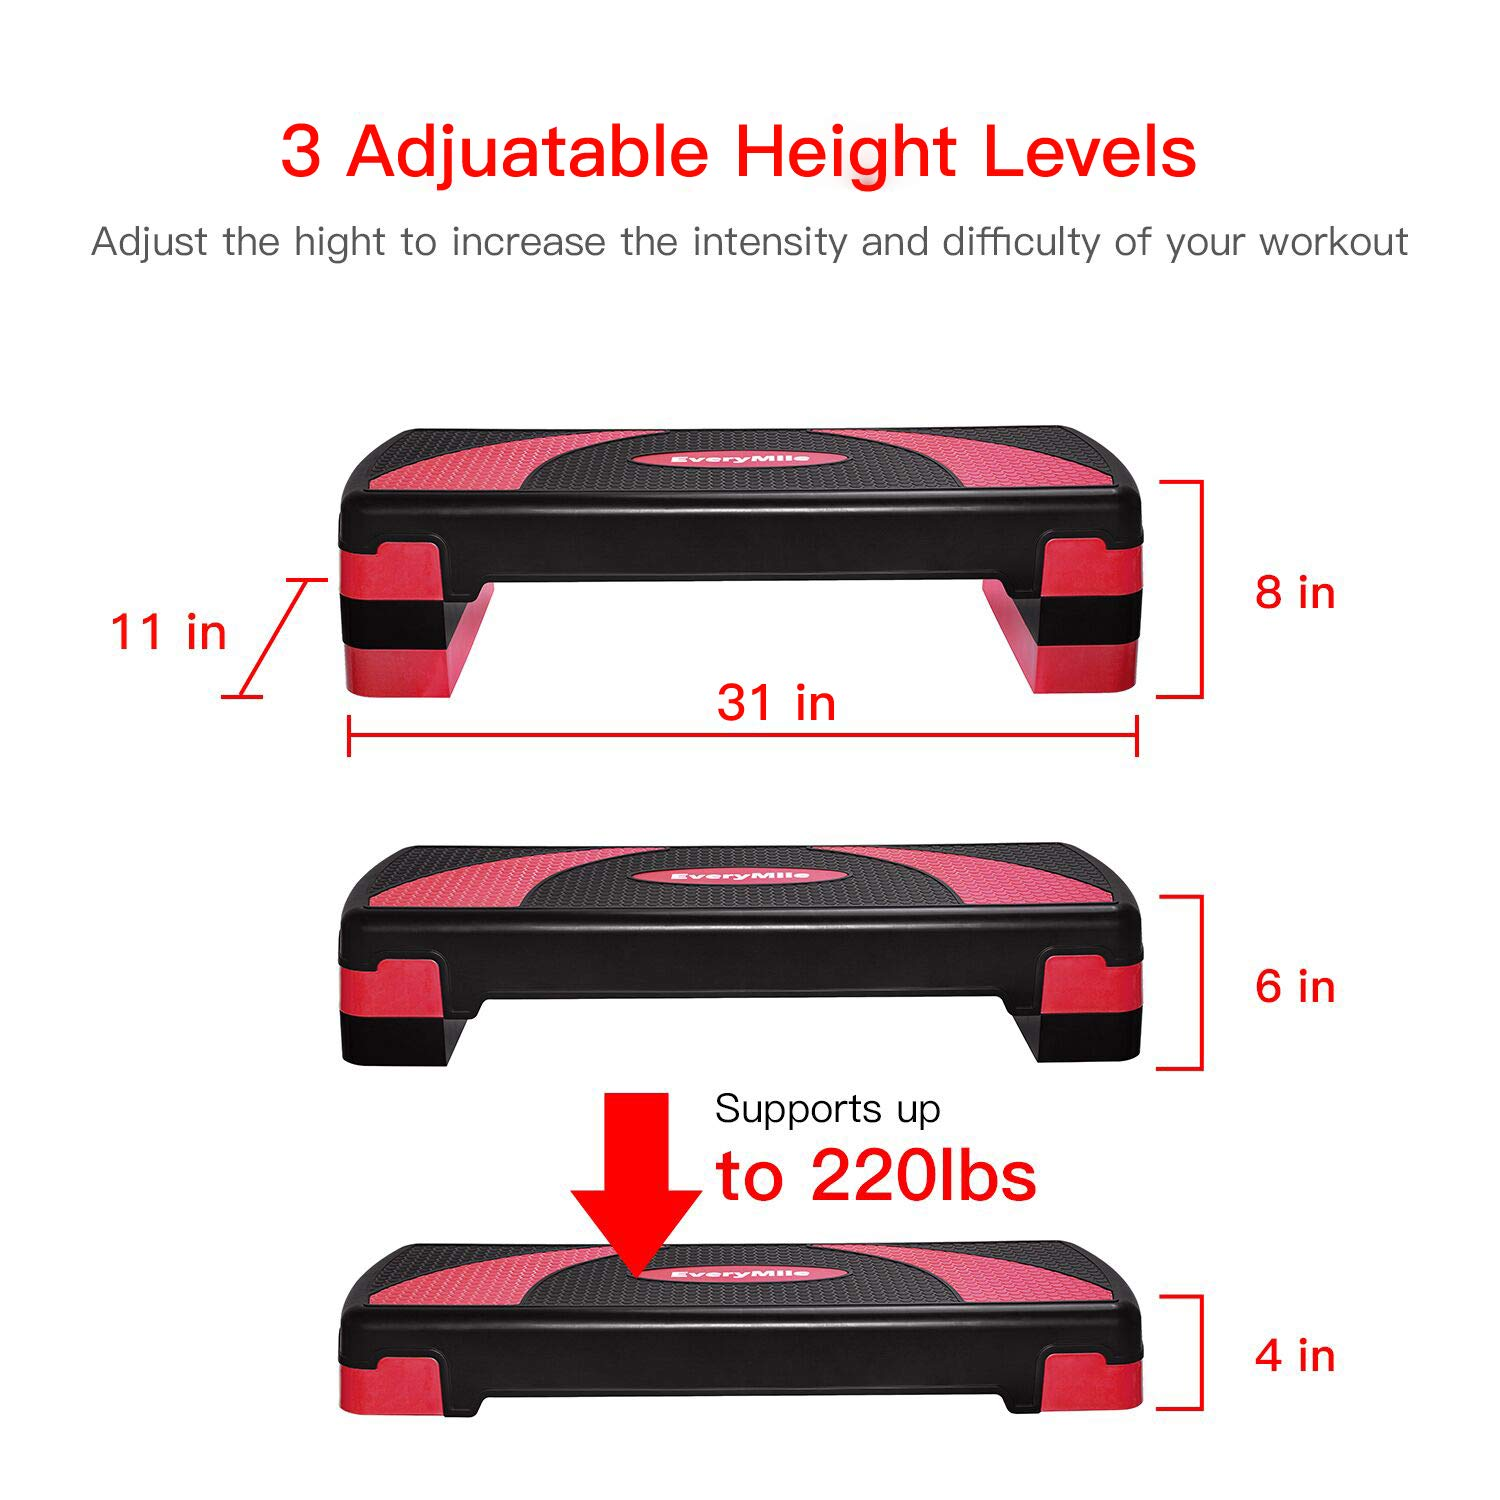 EveryMile Workout Aerobic Stepper, 4'' 6'' 8'' Levels Height-Adjustable Exercise Step Platform, 31Inch Fitness Step for Exercise, Nonslip Stepper Trainer Risers Deck Sports Accessory by EveryMile (Image #2)